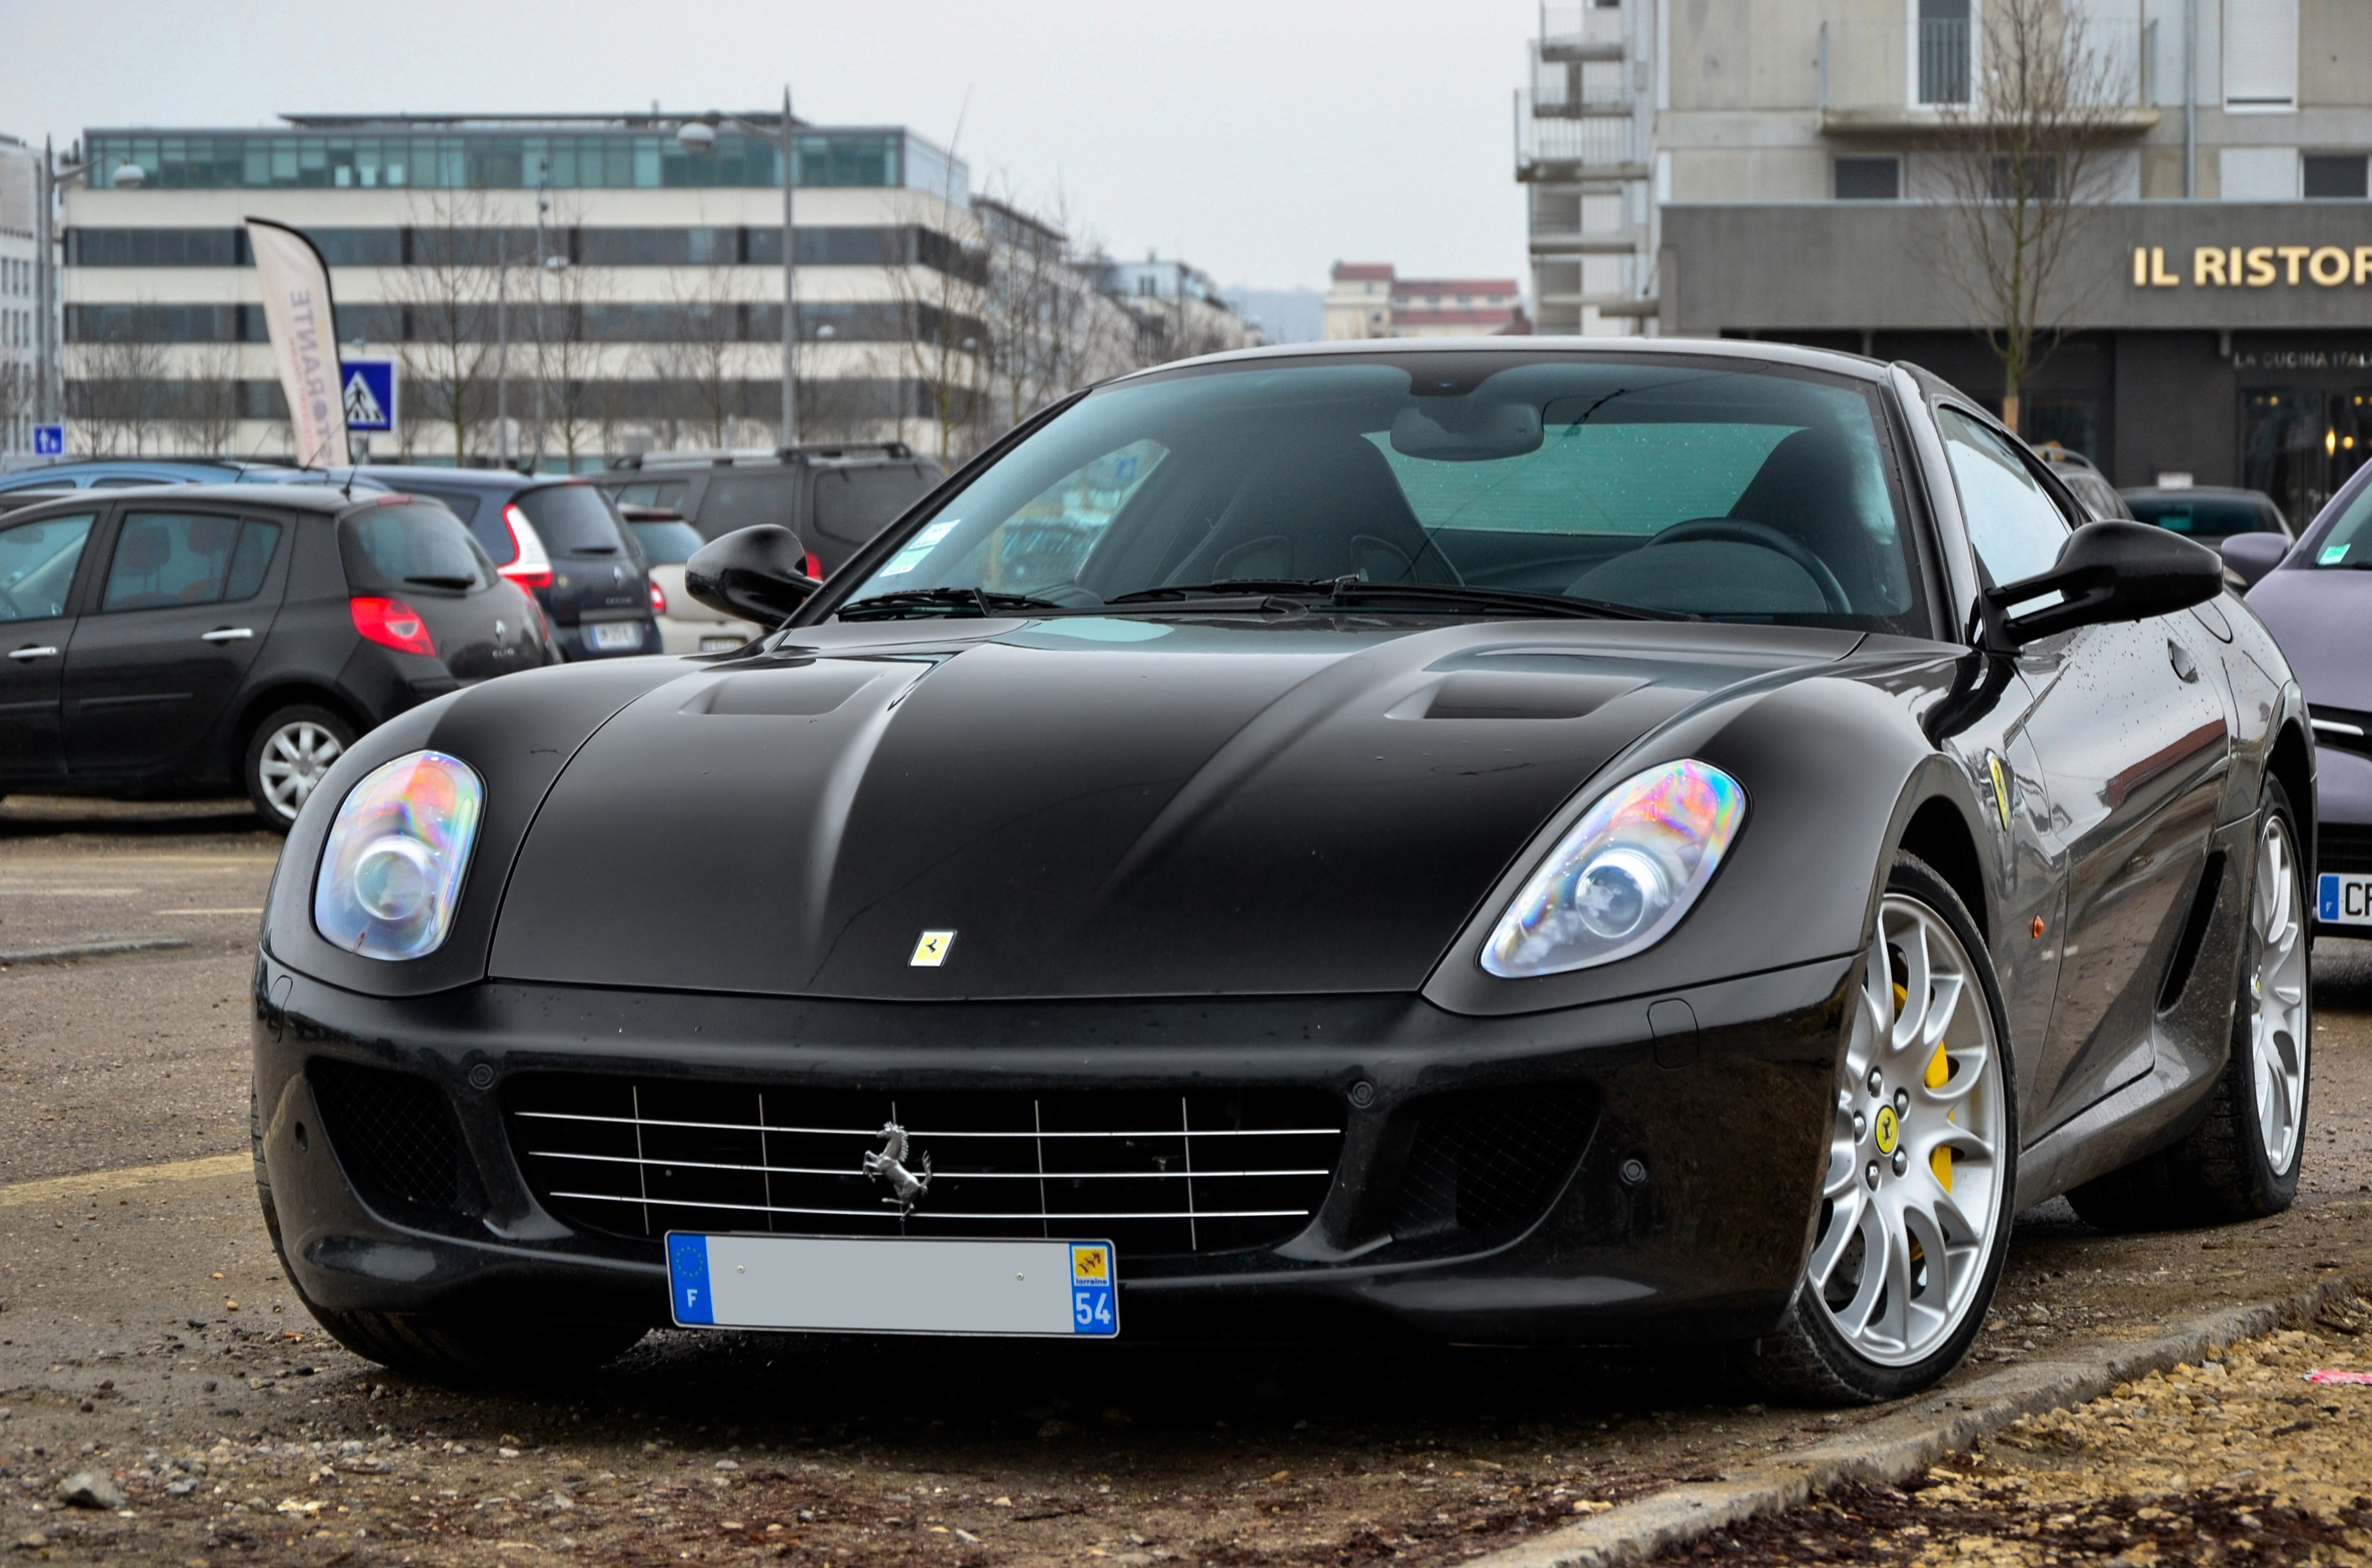 gtb pre luxury fiorano sale ferrari vehicles london owned gve for